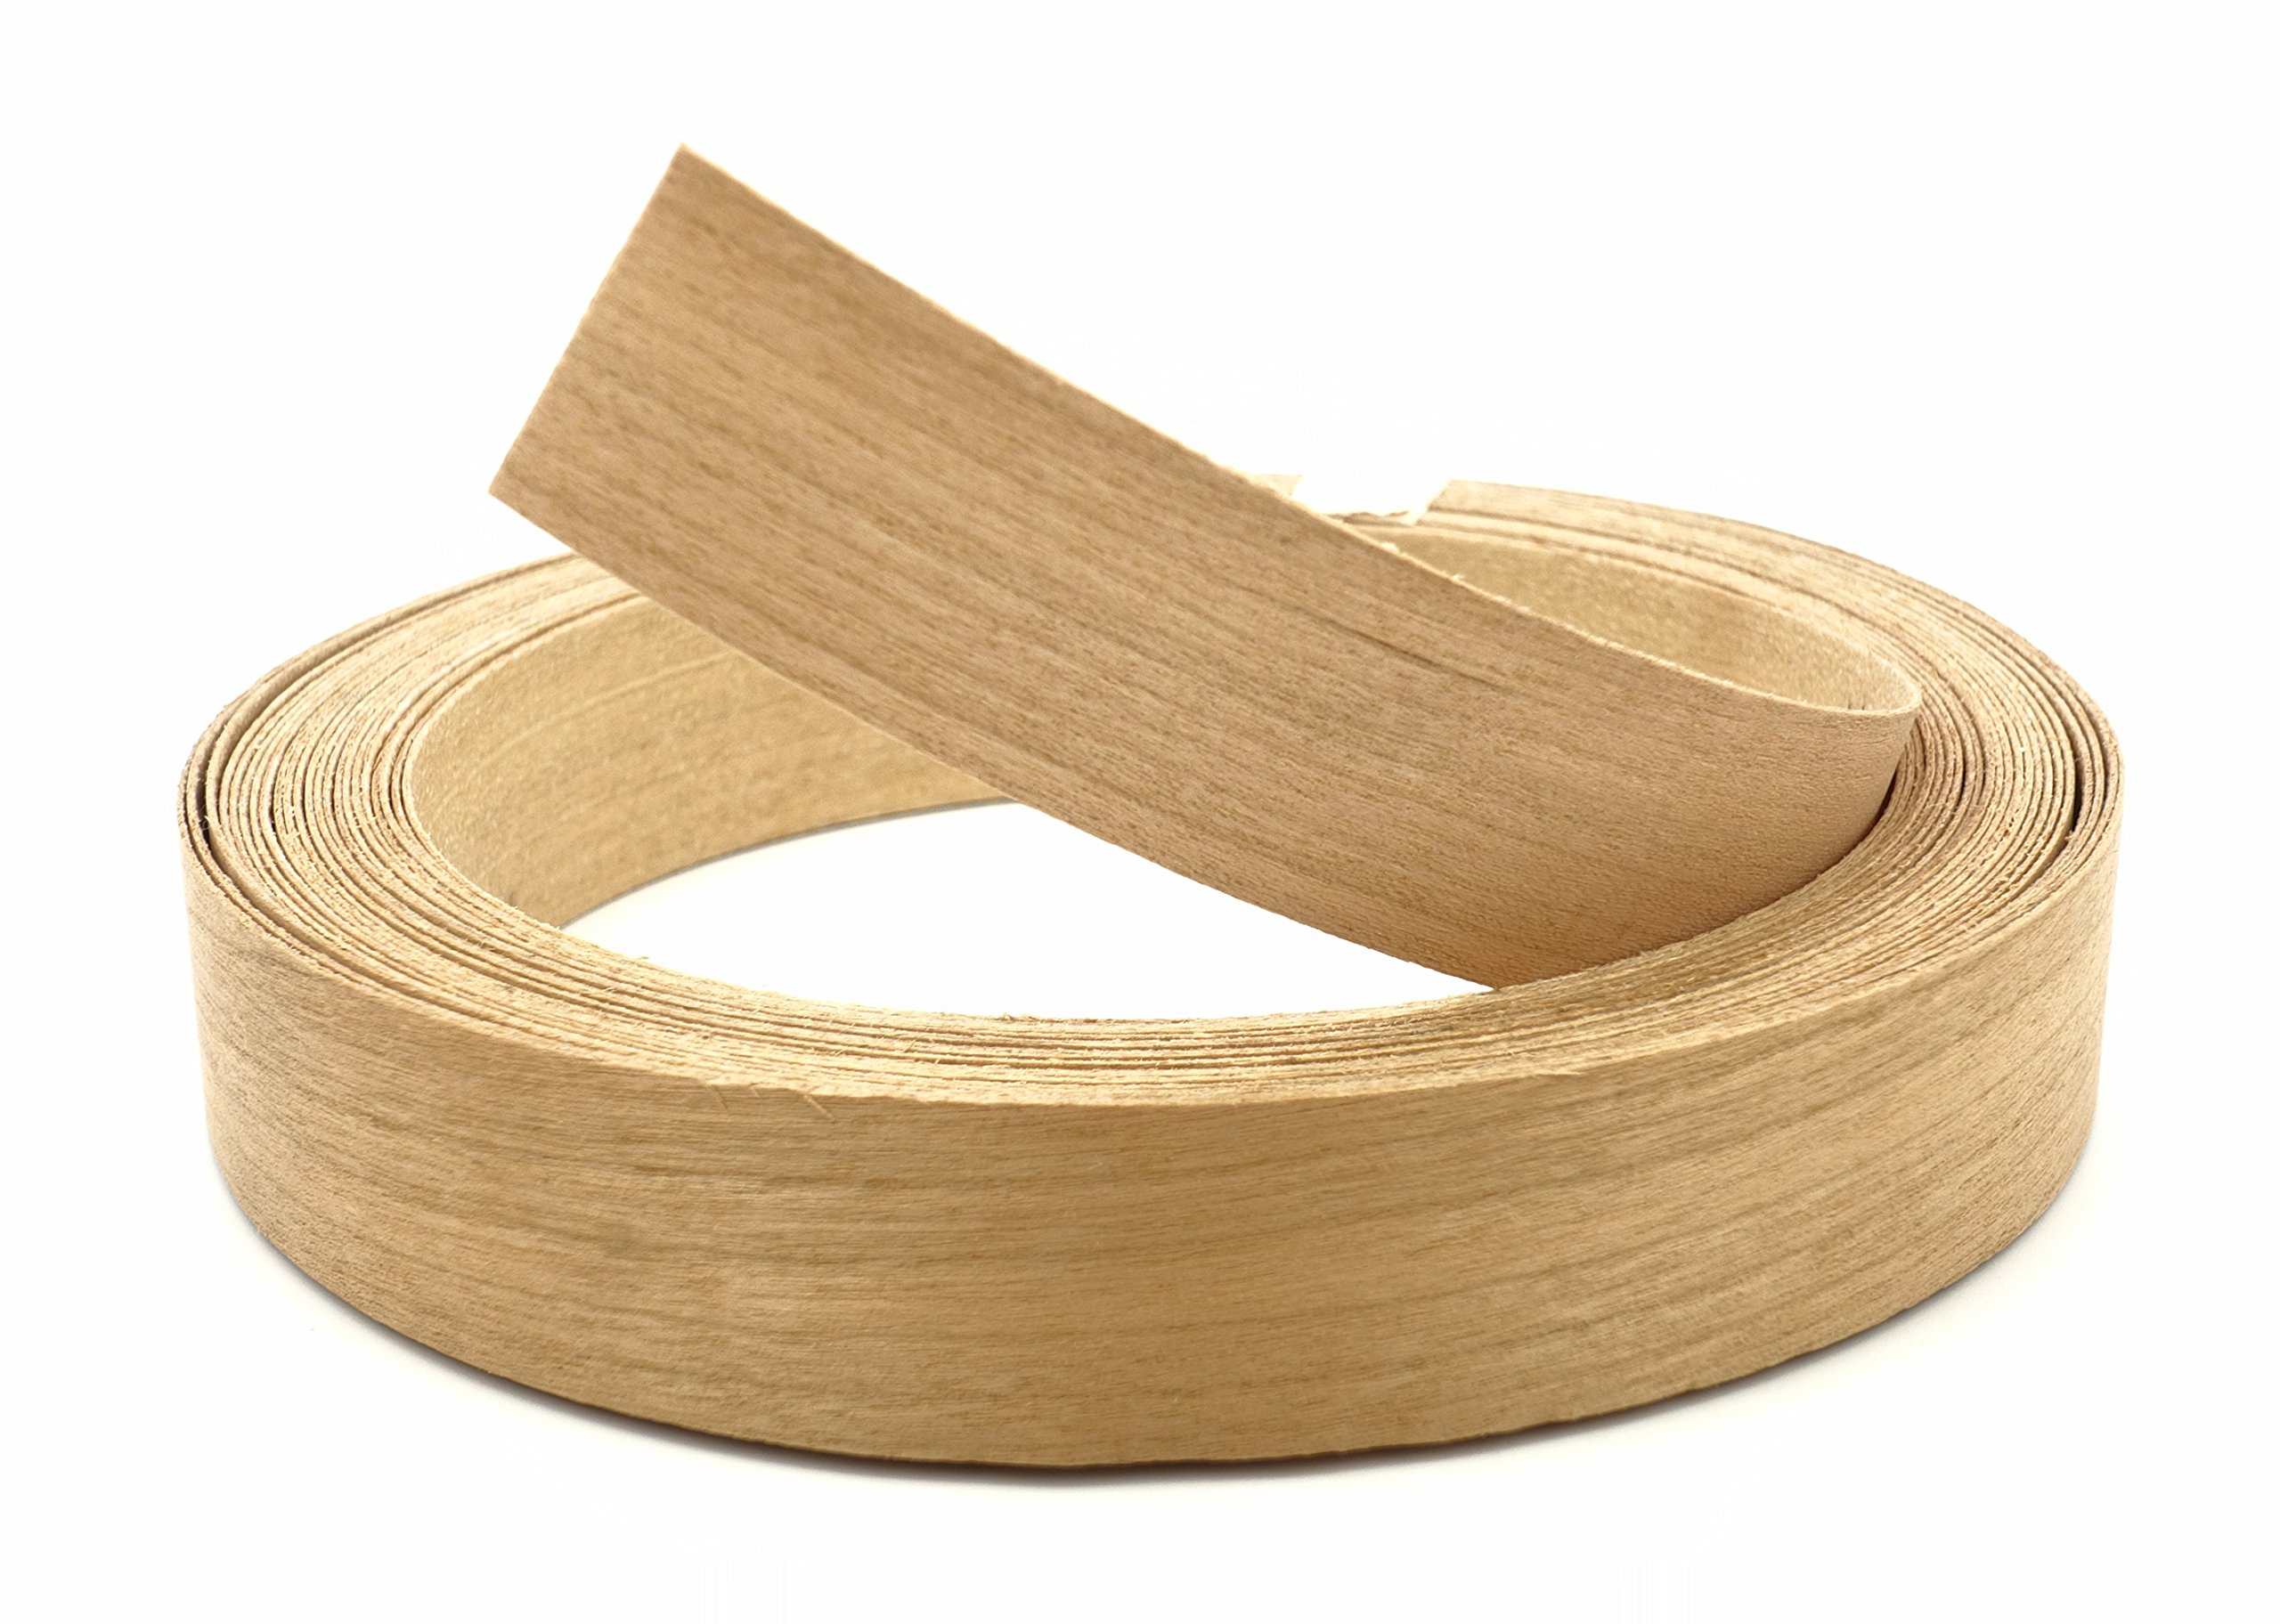 Cherry Wood Veneer Edge Banding Preglued 2'' X 25' Roll